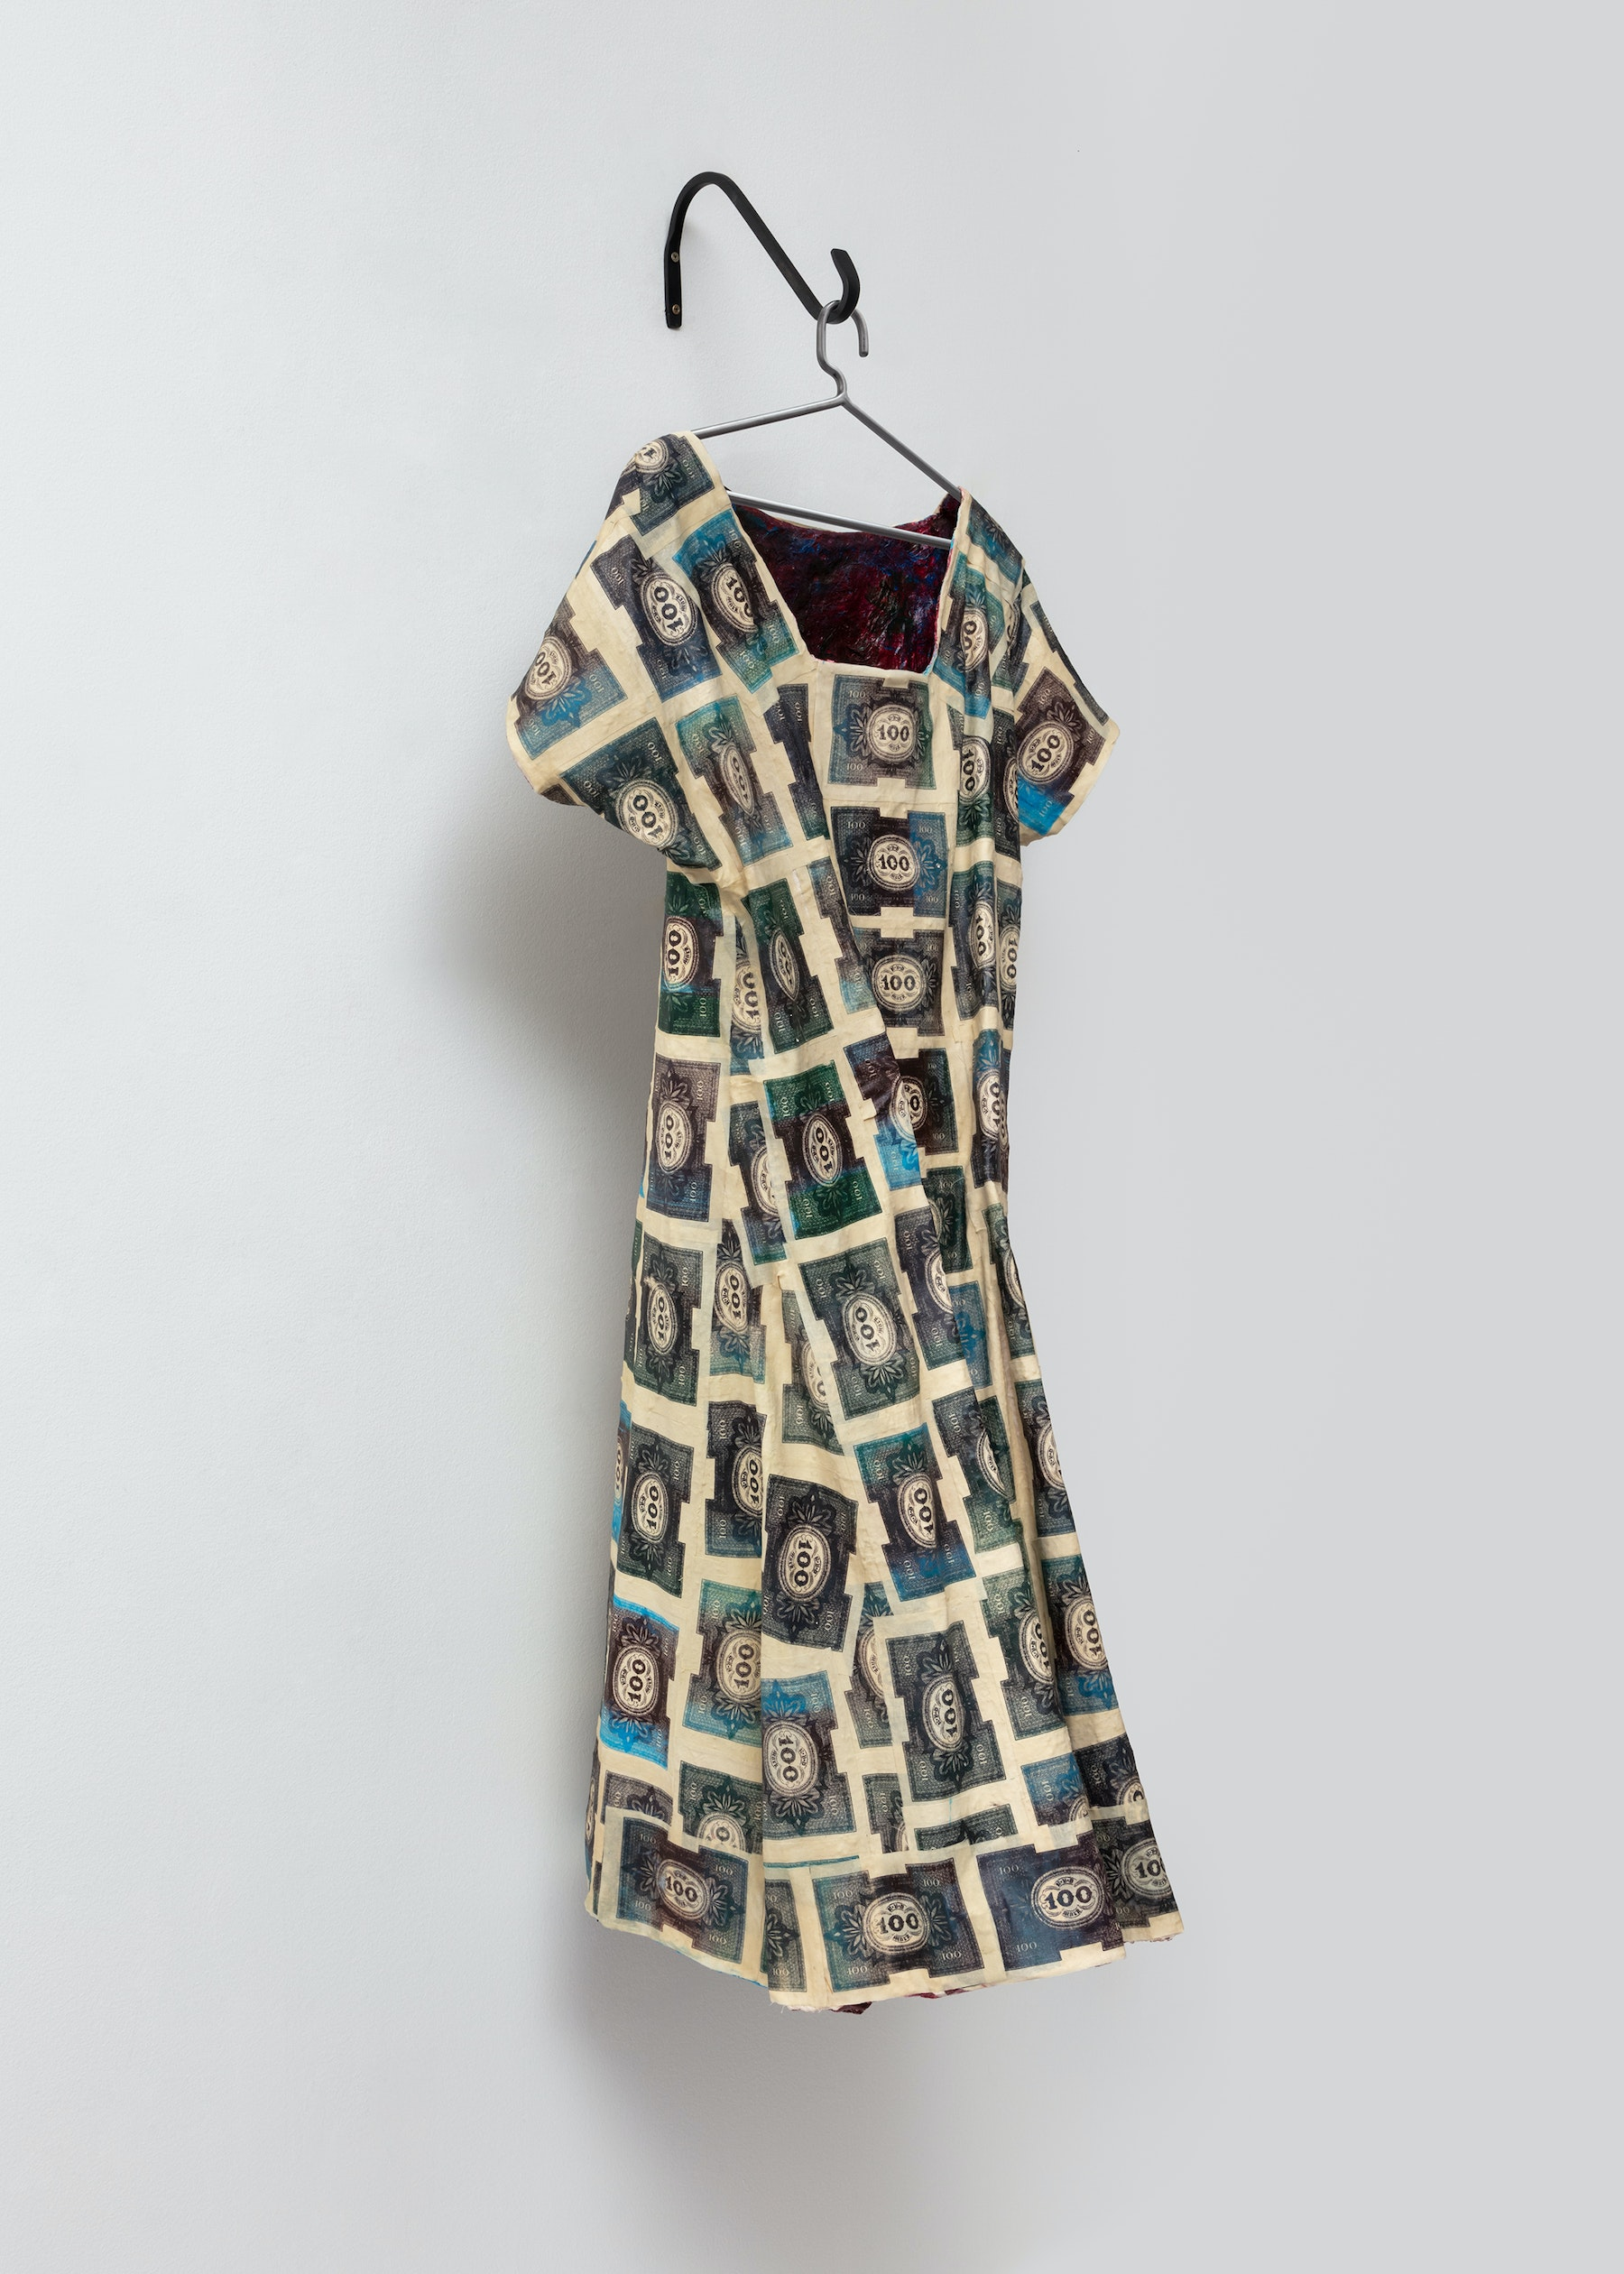 "Liz Glynn ""Panic Dress '23,"" 2020 Silkscreen on muslin, aquaresin, acrylic, fiberglass, and steel 58 x 24.5 x 20.5"" [HxWxD] (147.32 x 62.23 x 52.07 cm) Inventory #GLY176 Courtesy of the artist and Vielmetter Los Angeles Photo credit: Brica Wilcox"